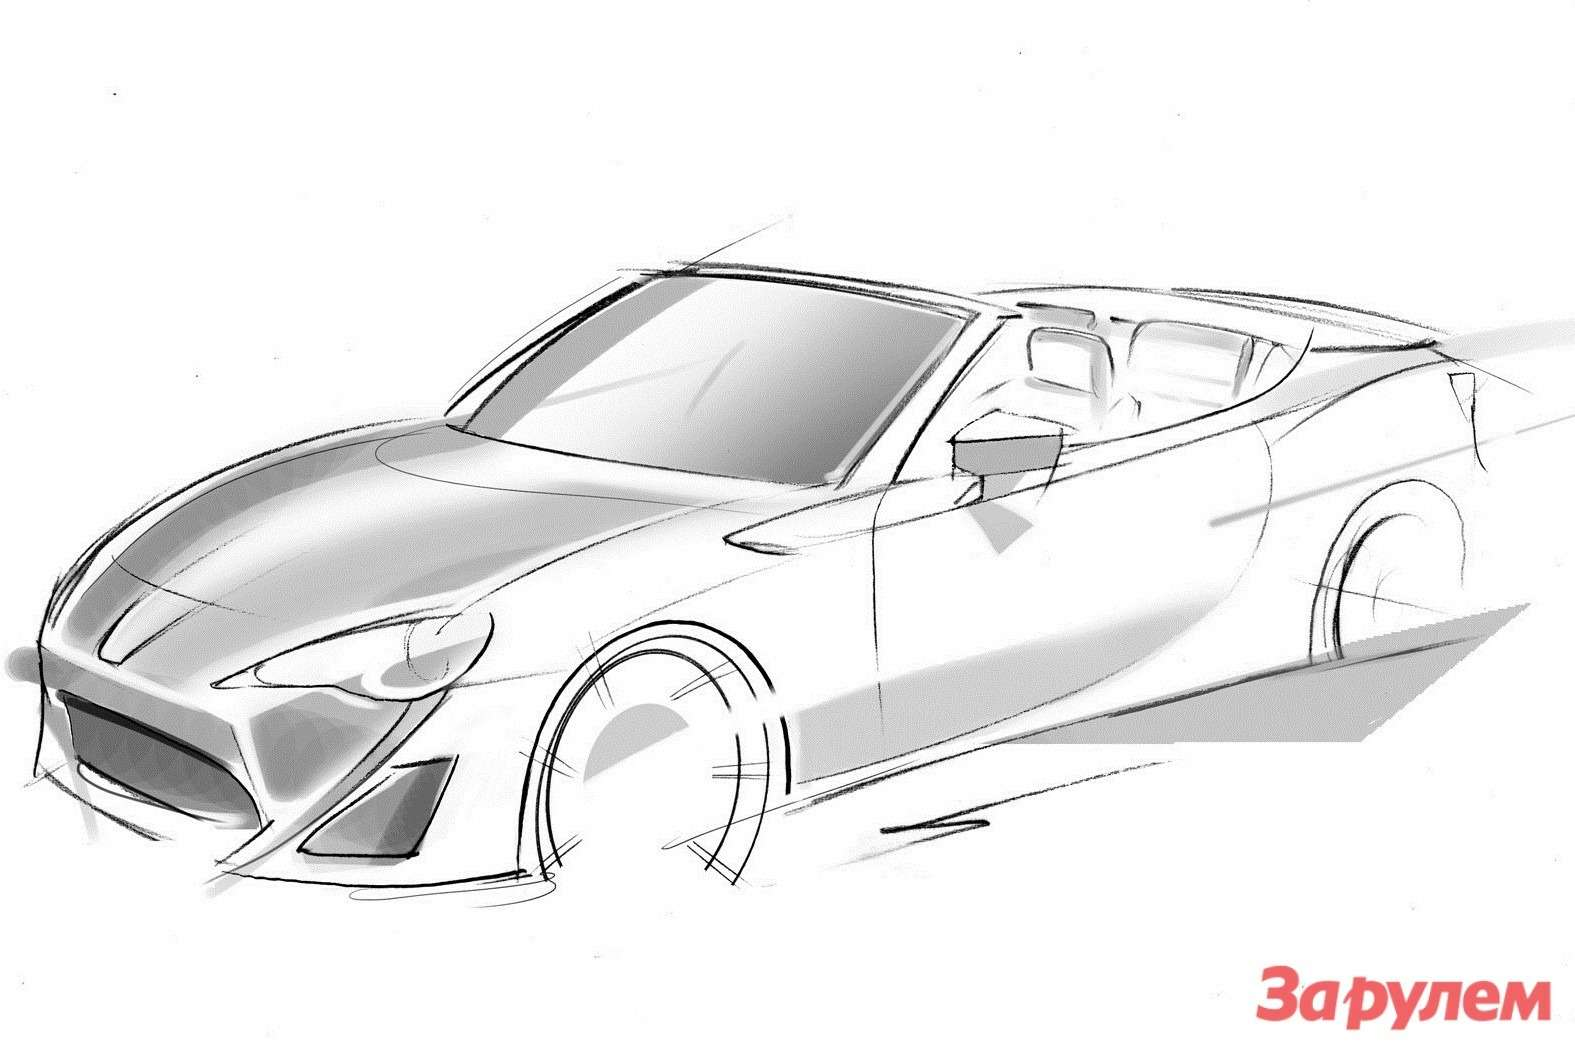 Toyota GT 86 Open Concept first sketch